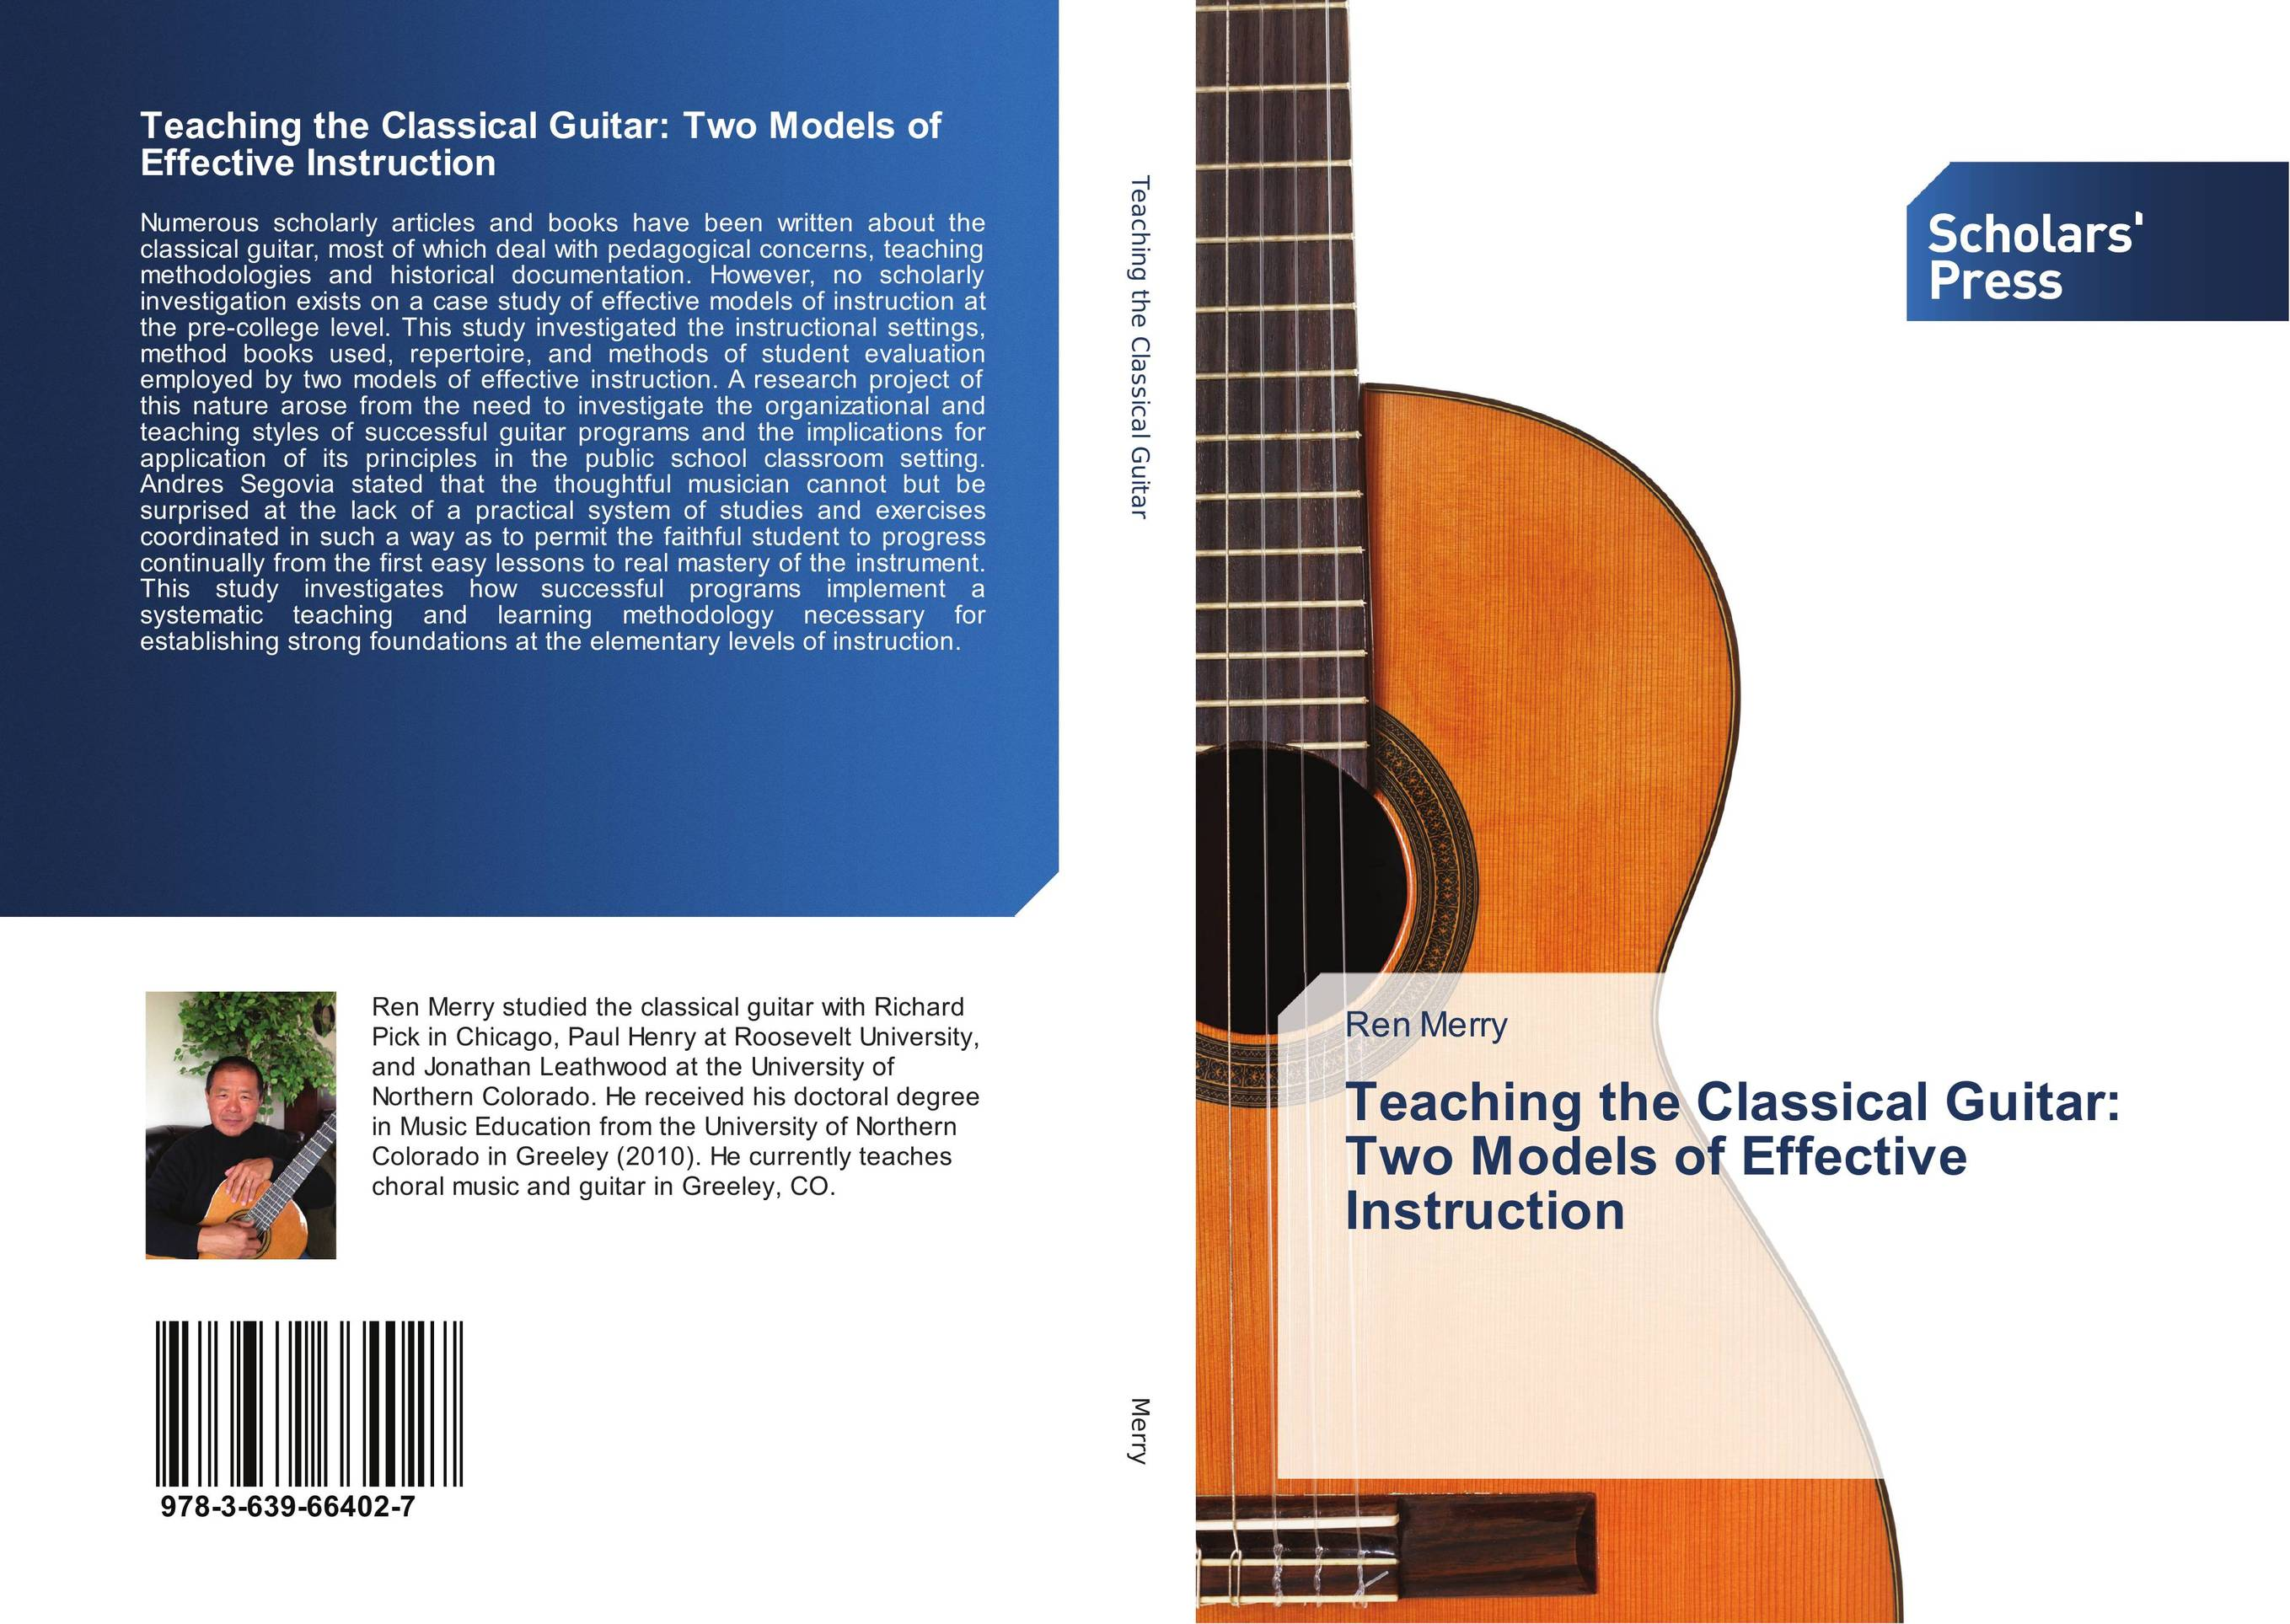 Teaching the Classical Guitar: Two Models of Effective Instruction pathways to college the impact of inventive pre collegiate programs